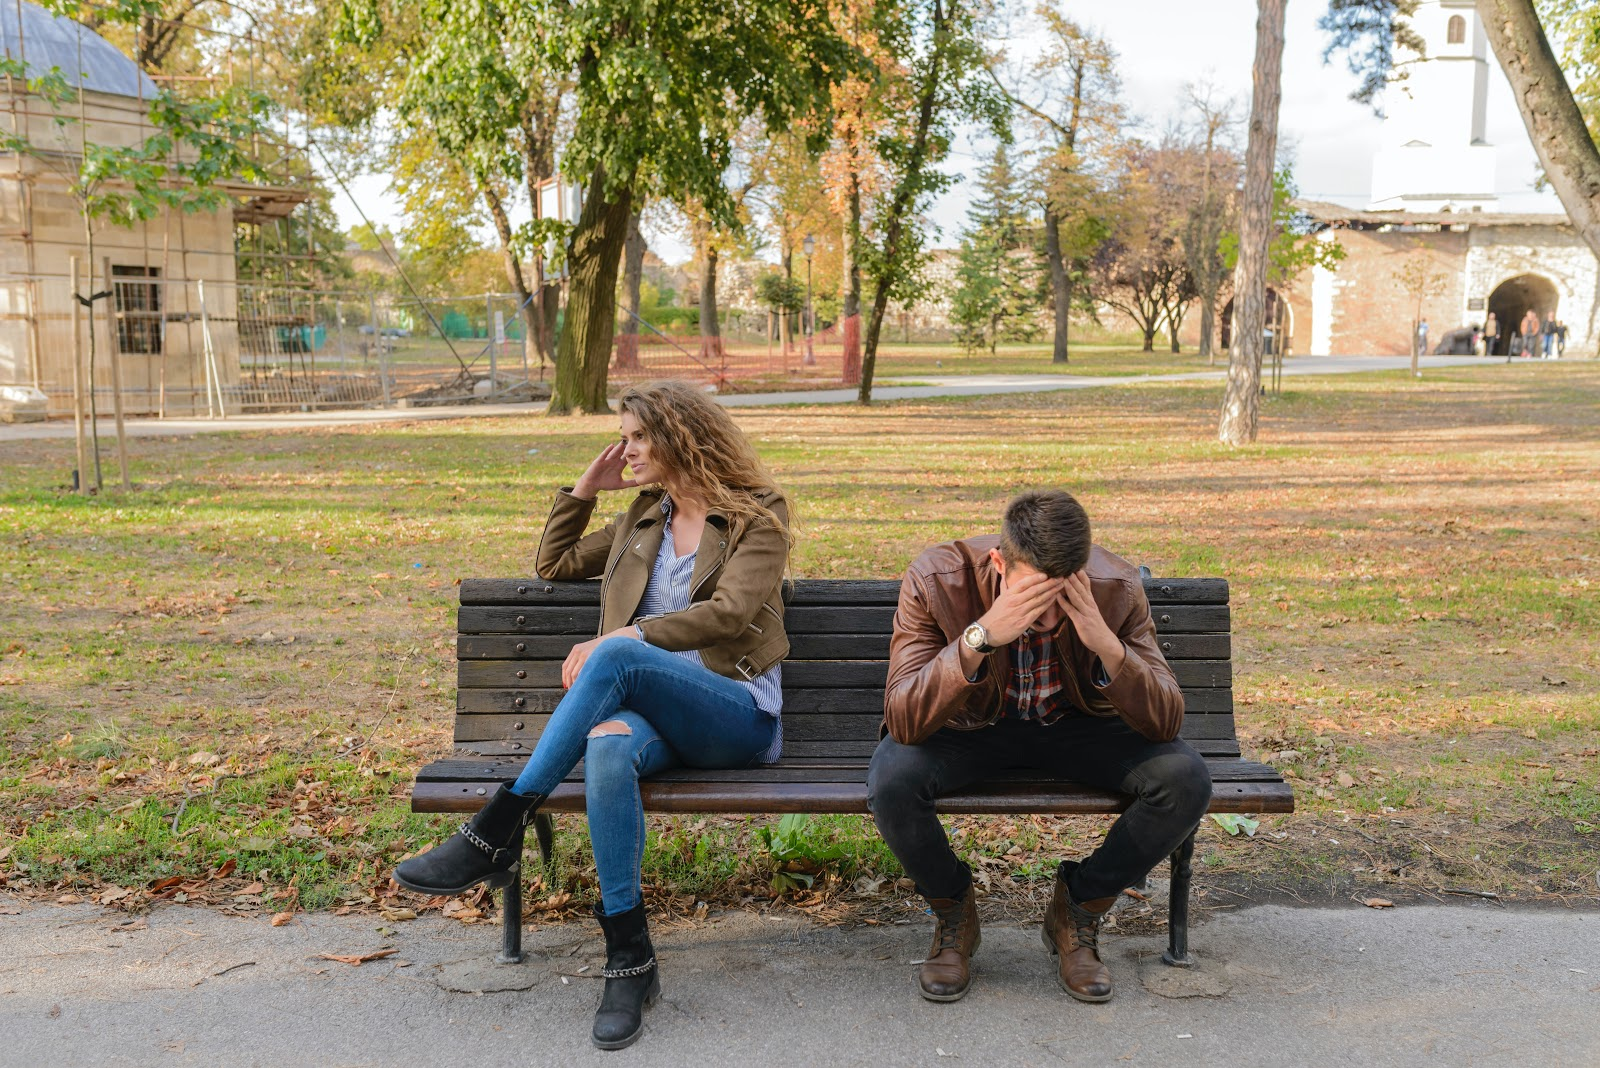 A couple on a bench struggles with communication.